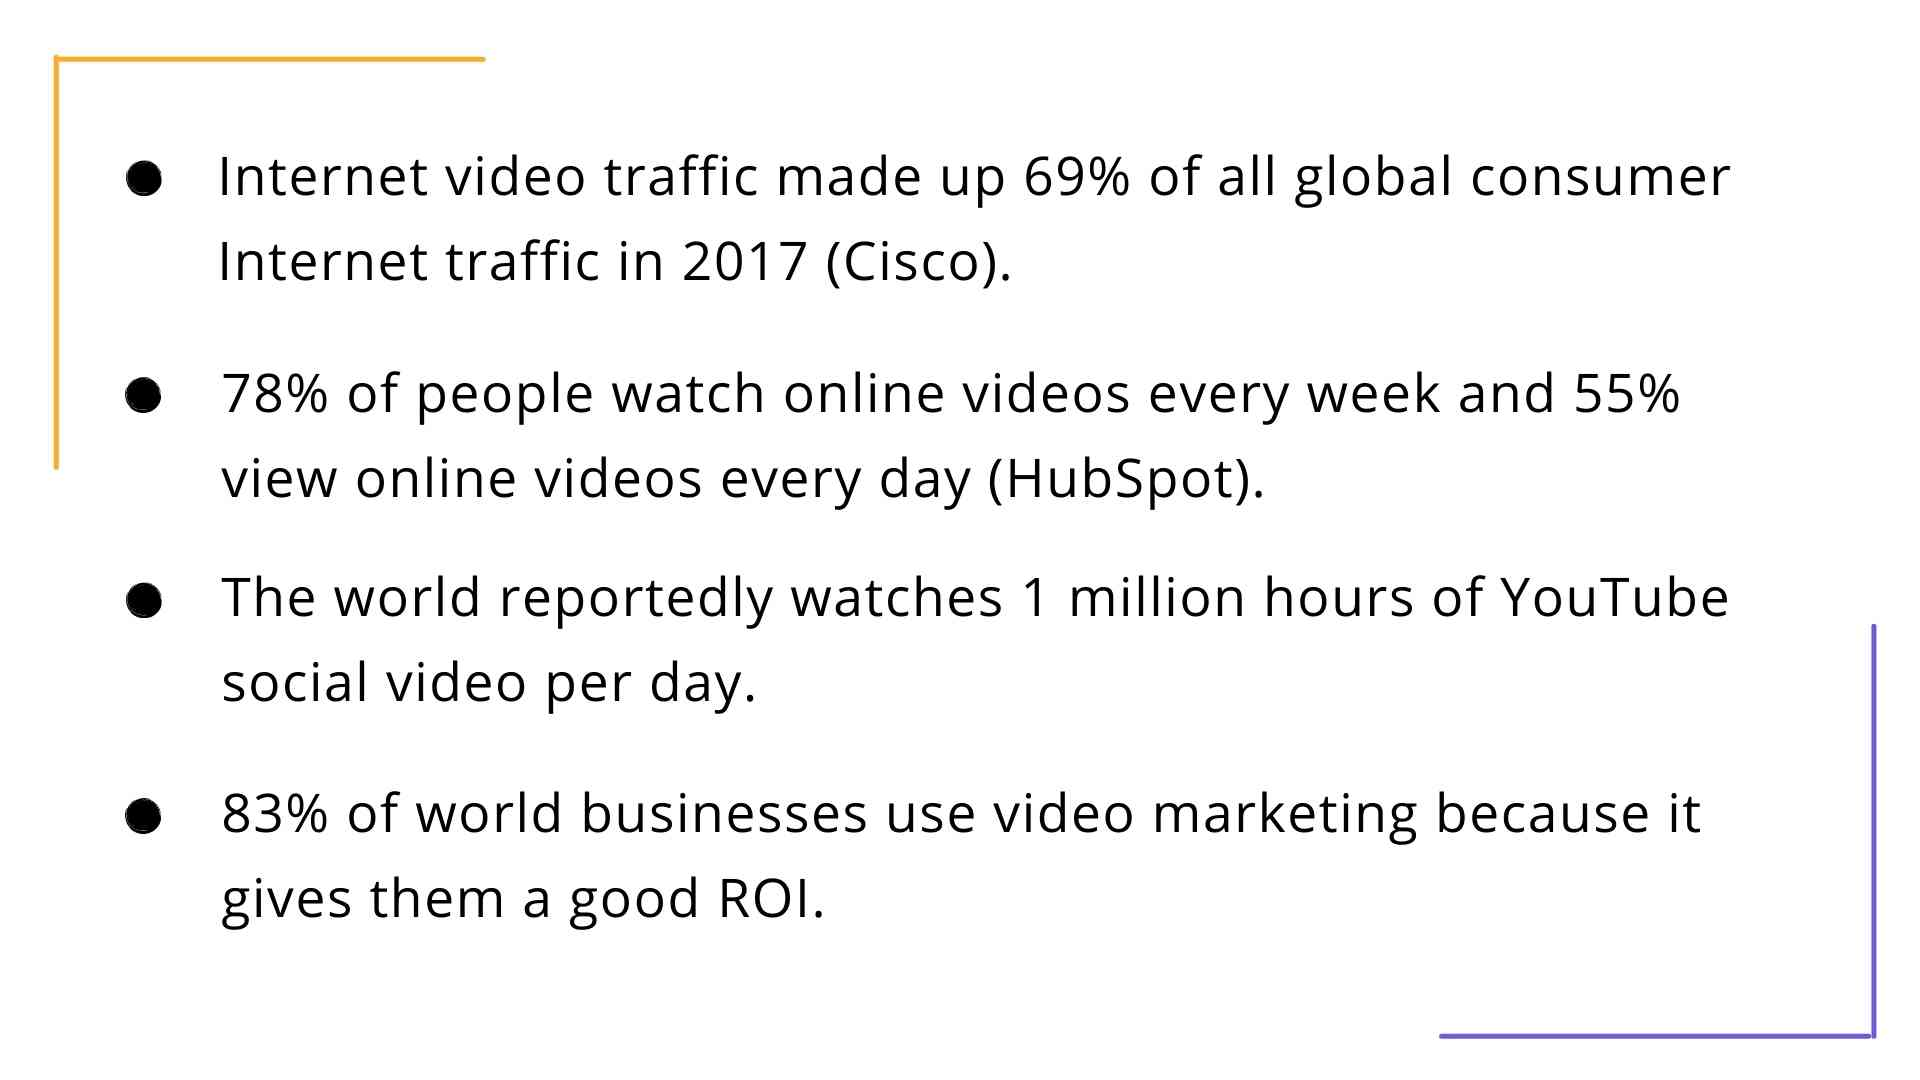 Video viewing statistics in the article about the video for the product